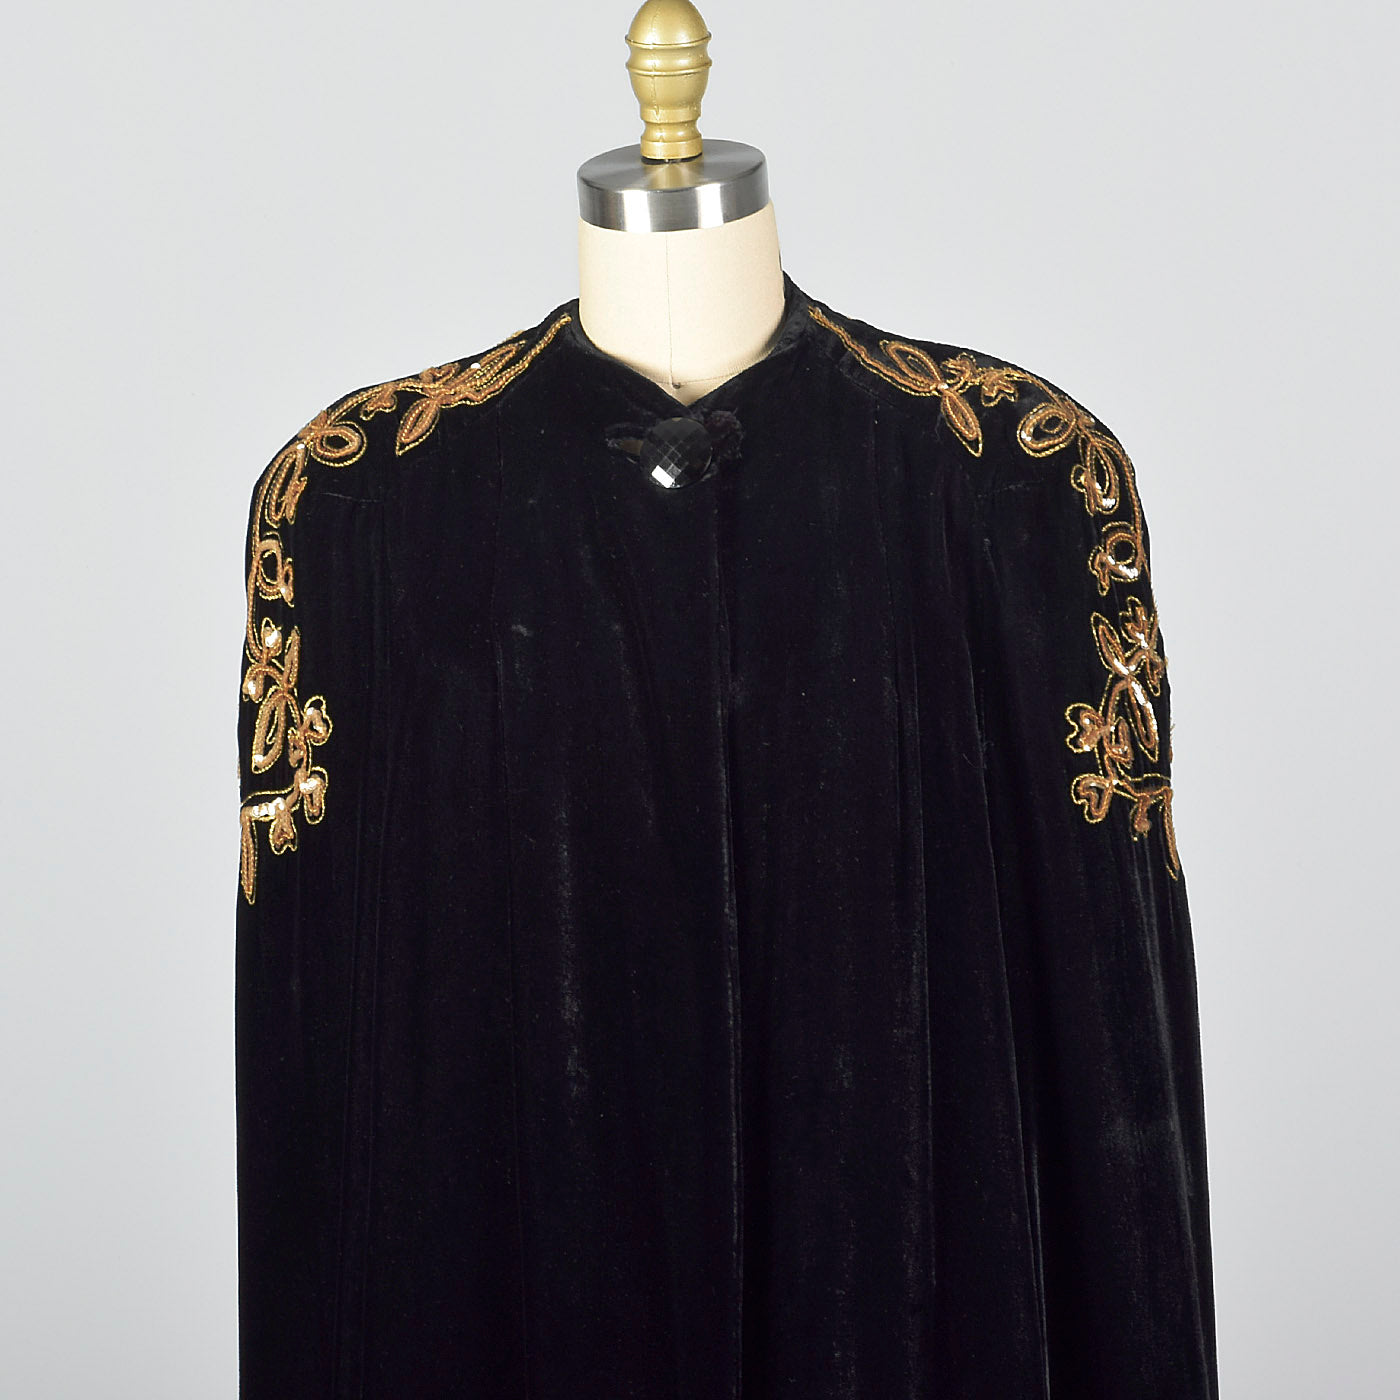 1940s Black Velvet Opera Cape with Gold Sequin Shoulders